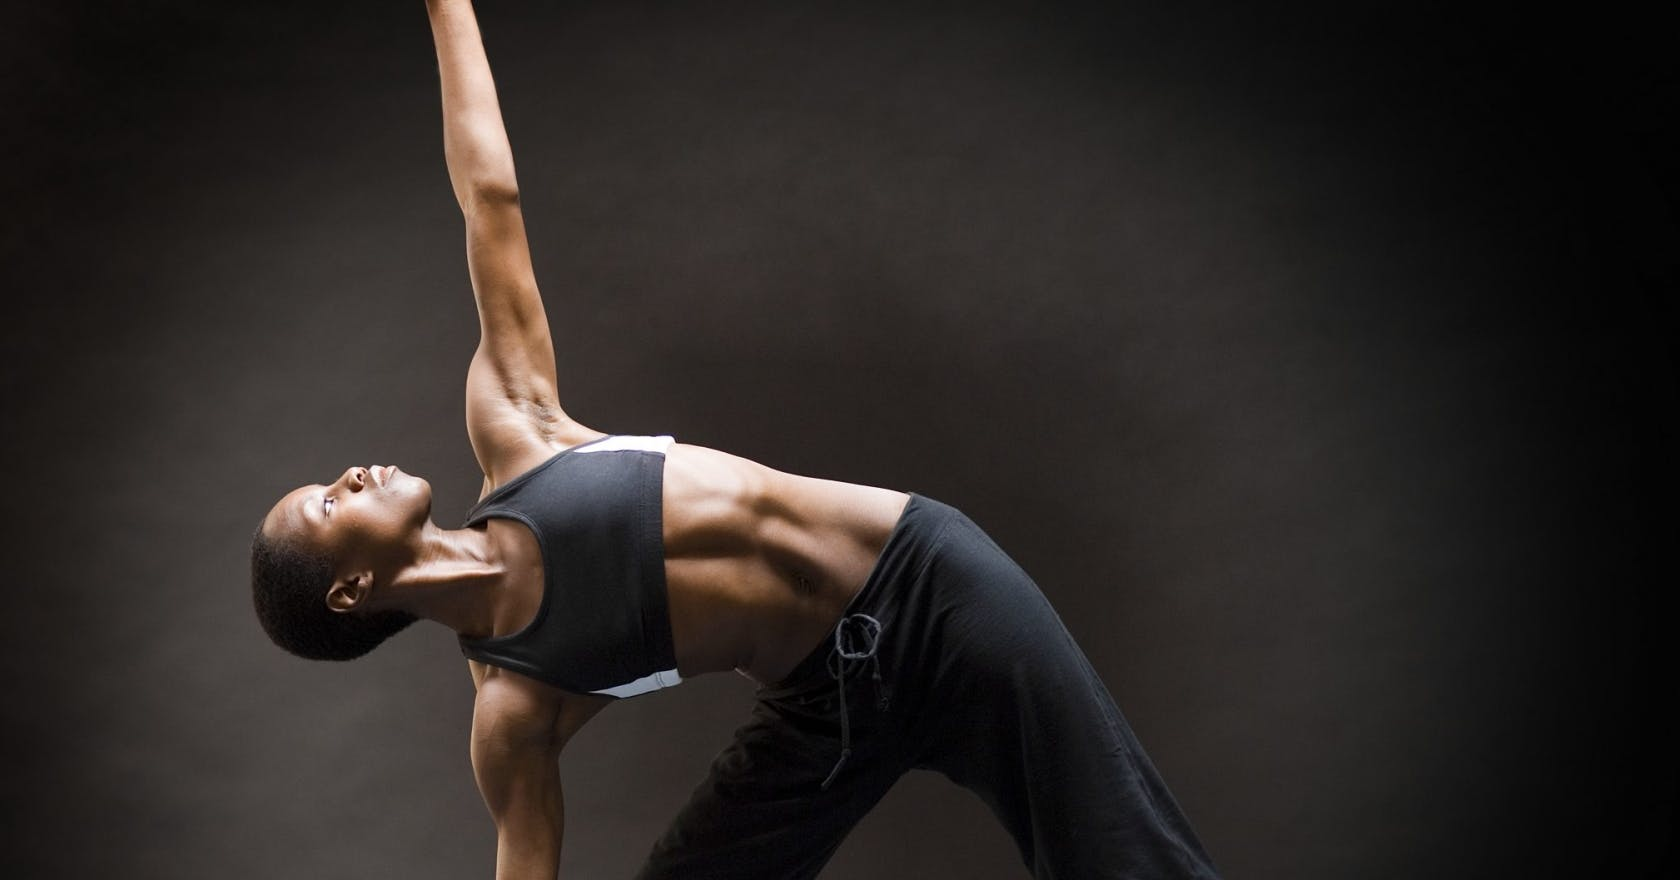 The 3 stretches everyone needs to add to their daily routine